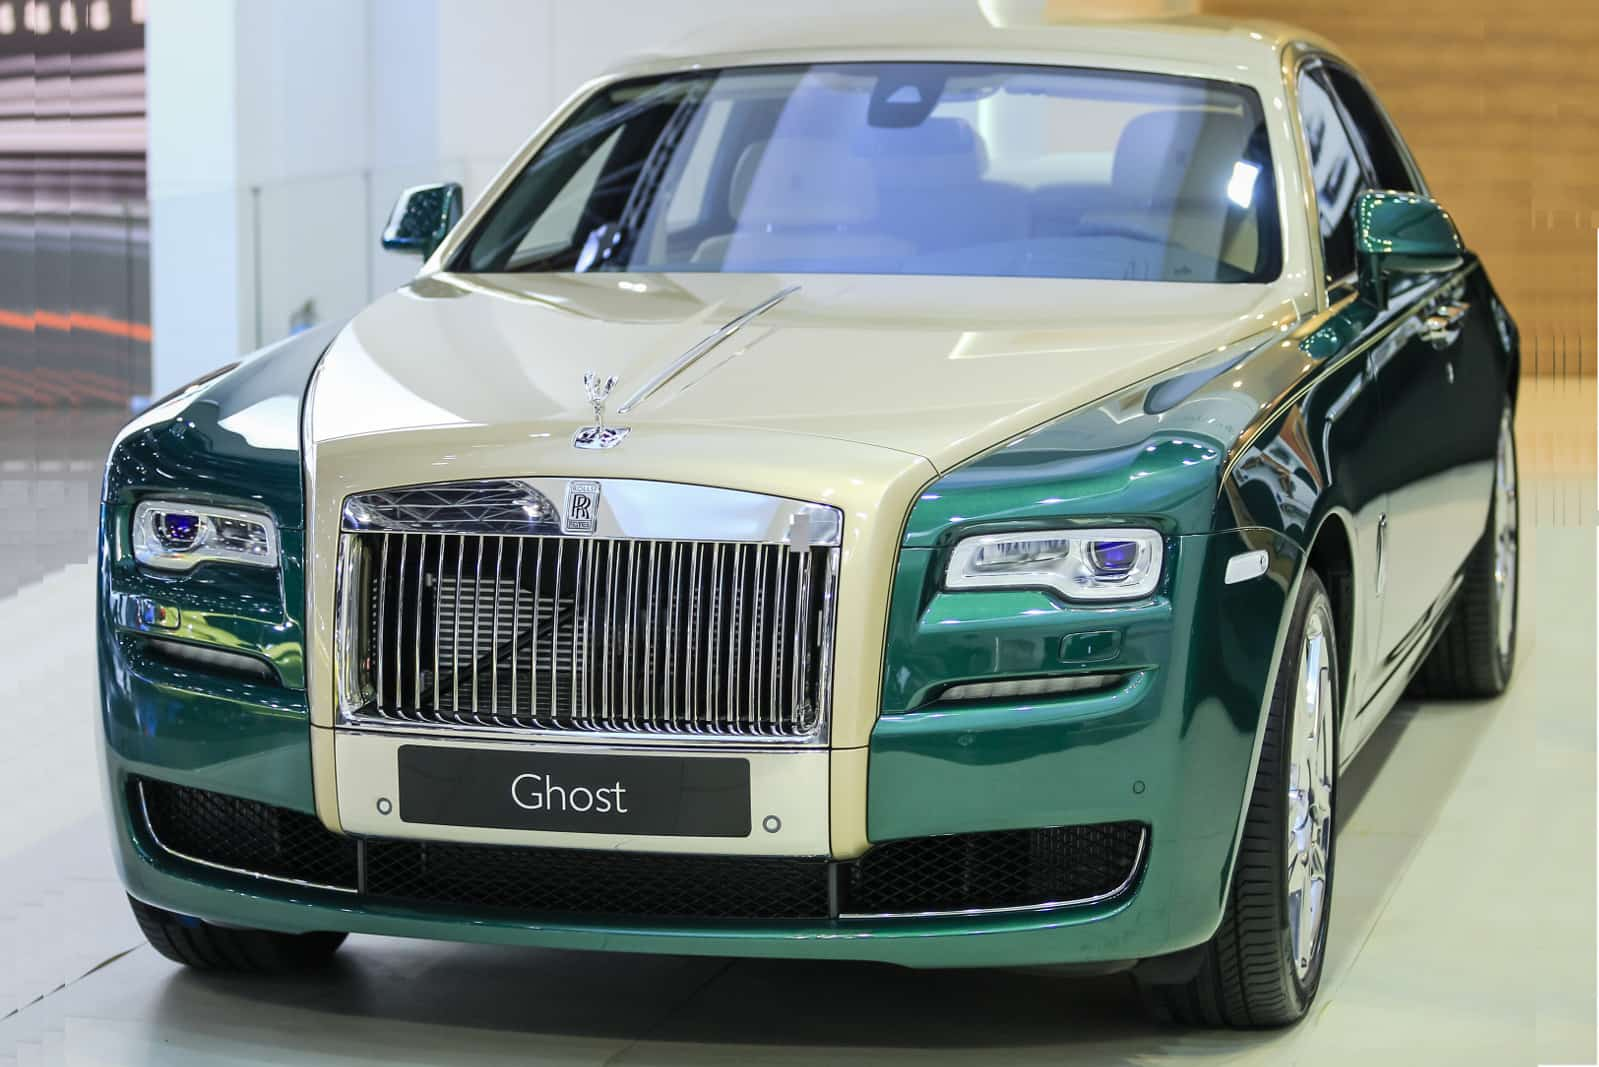 Two New Rolls-Royce Phantom Versions: Coupe Tiger And